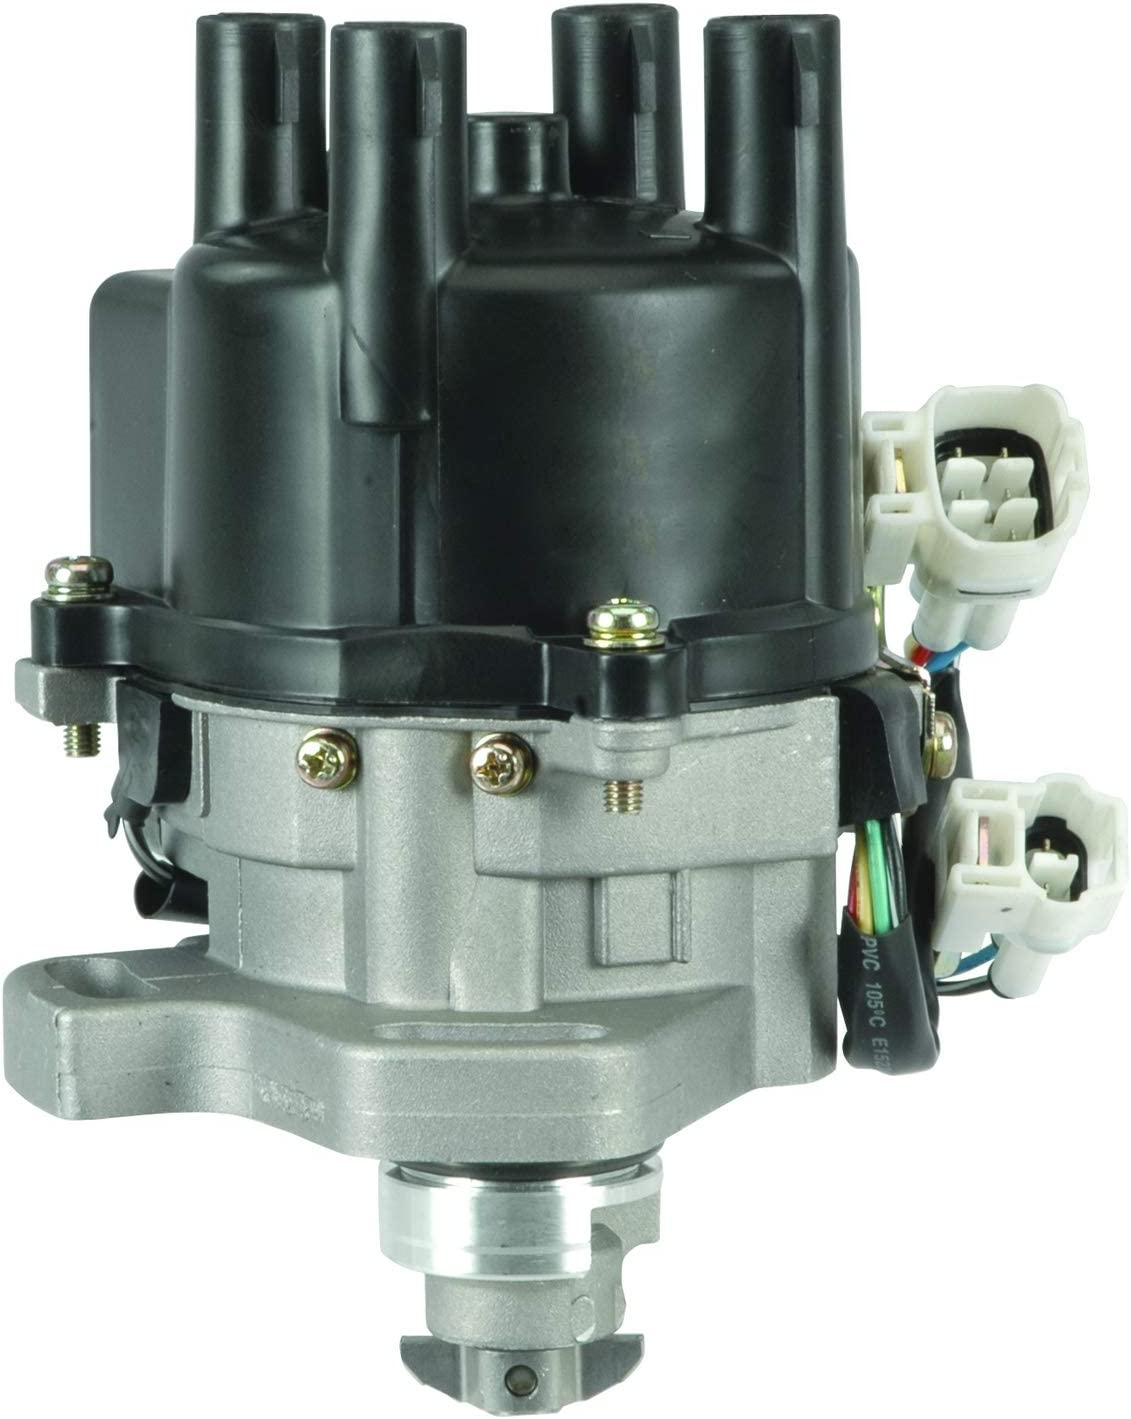 NEW Distributor Fits Toyota Celica Corolla /& Geo Prizm 1.8 4-Cyl 1993 1994 1995 2-YEAR WARRANTY